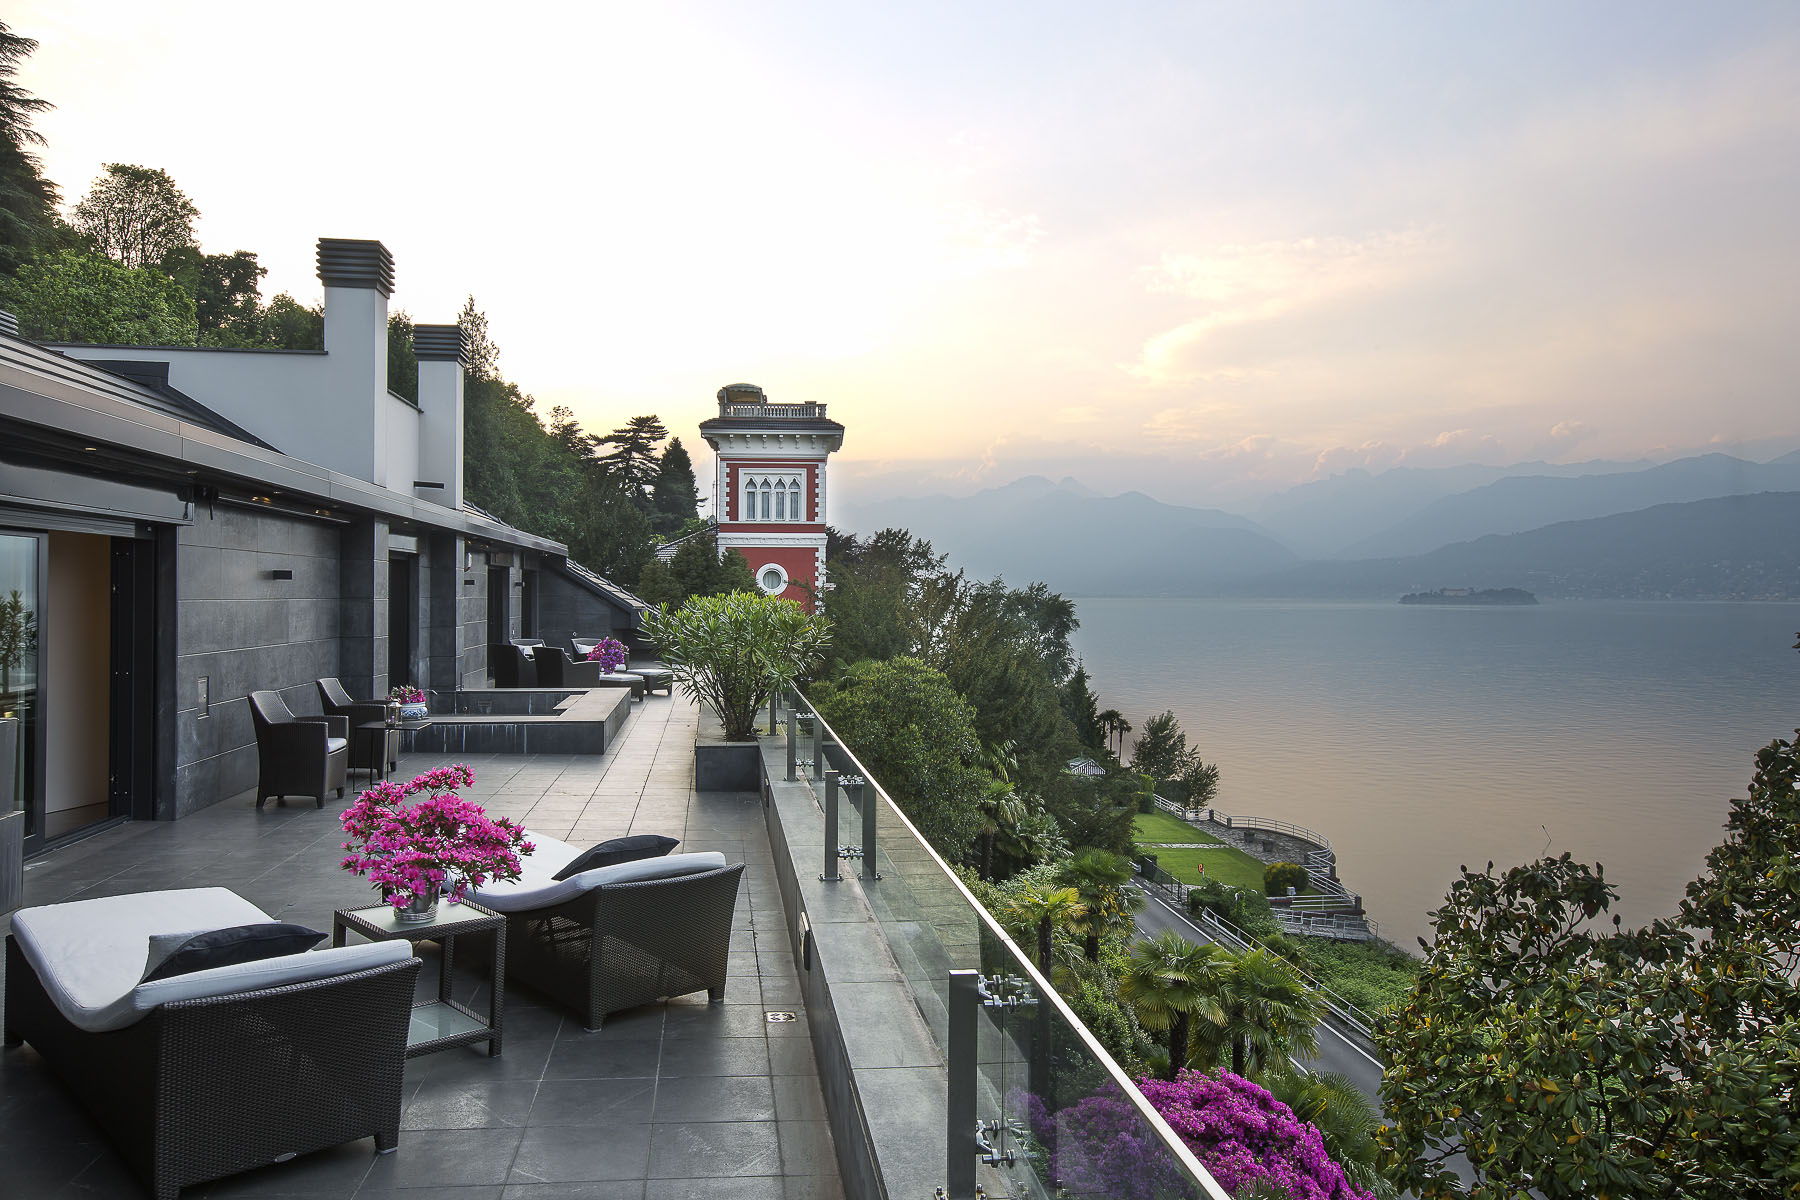 Single Family Home for Sale at An alluring lakefront villa in the enchanting Stresa Stresa, Verbano Cusio Ossola 28838 Italy